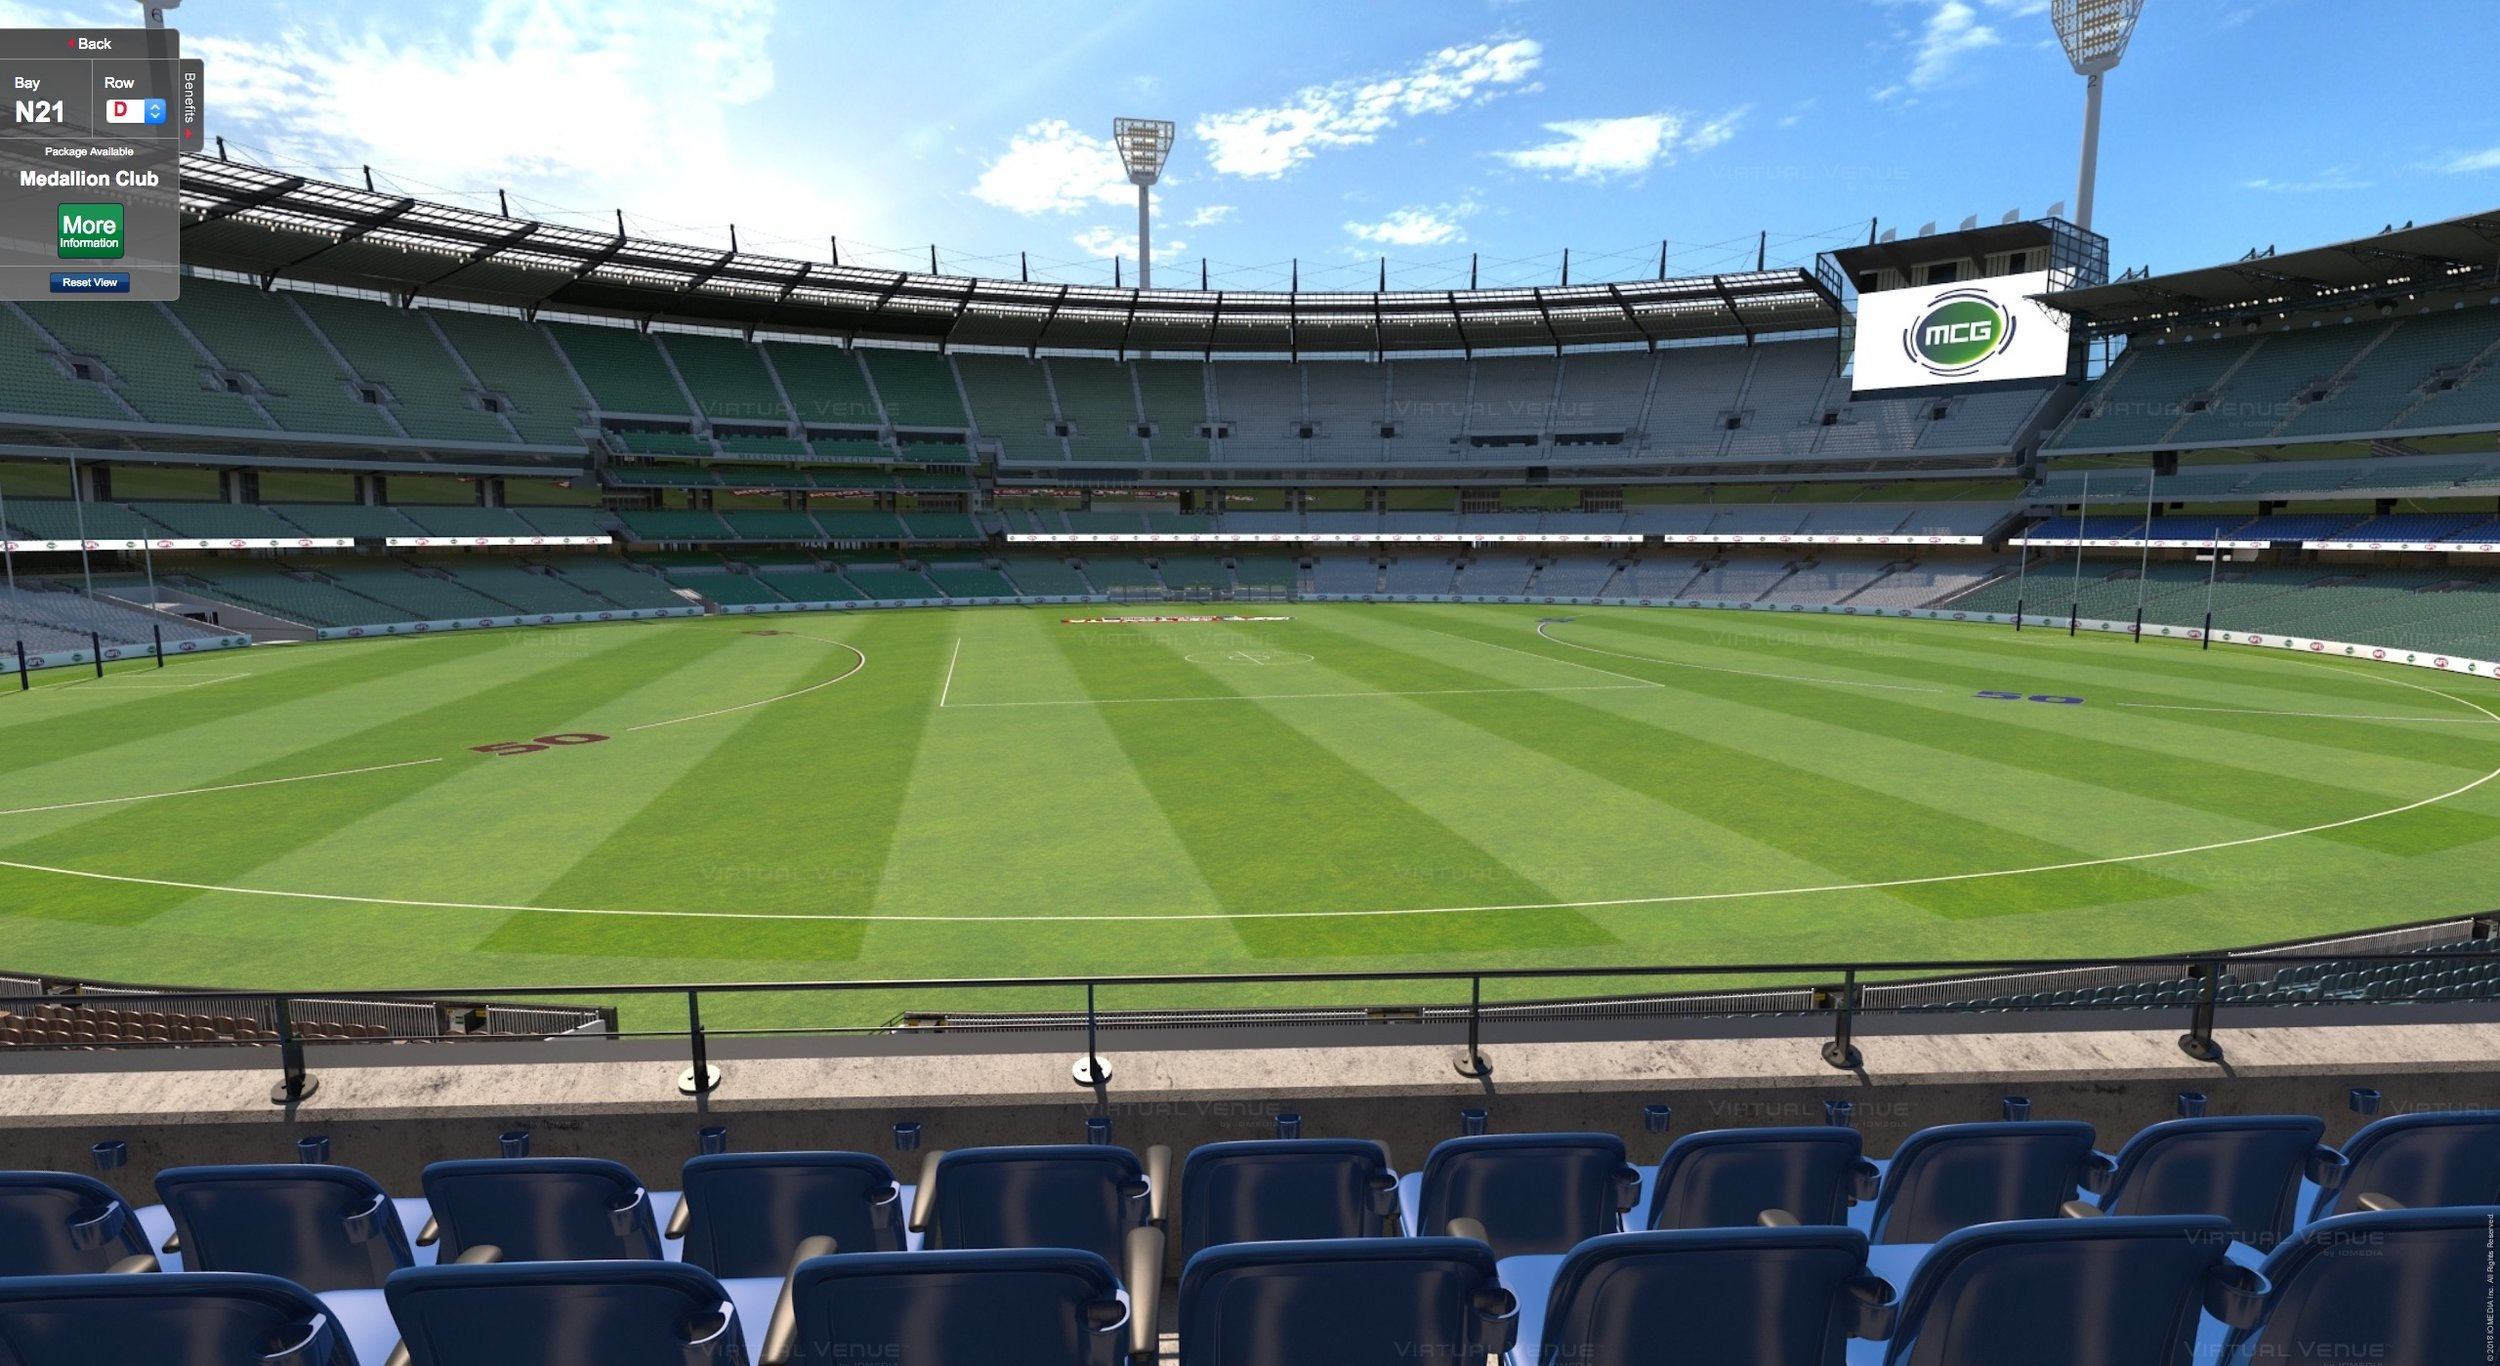 MCG Medallion Club seating